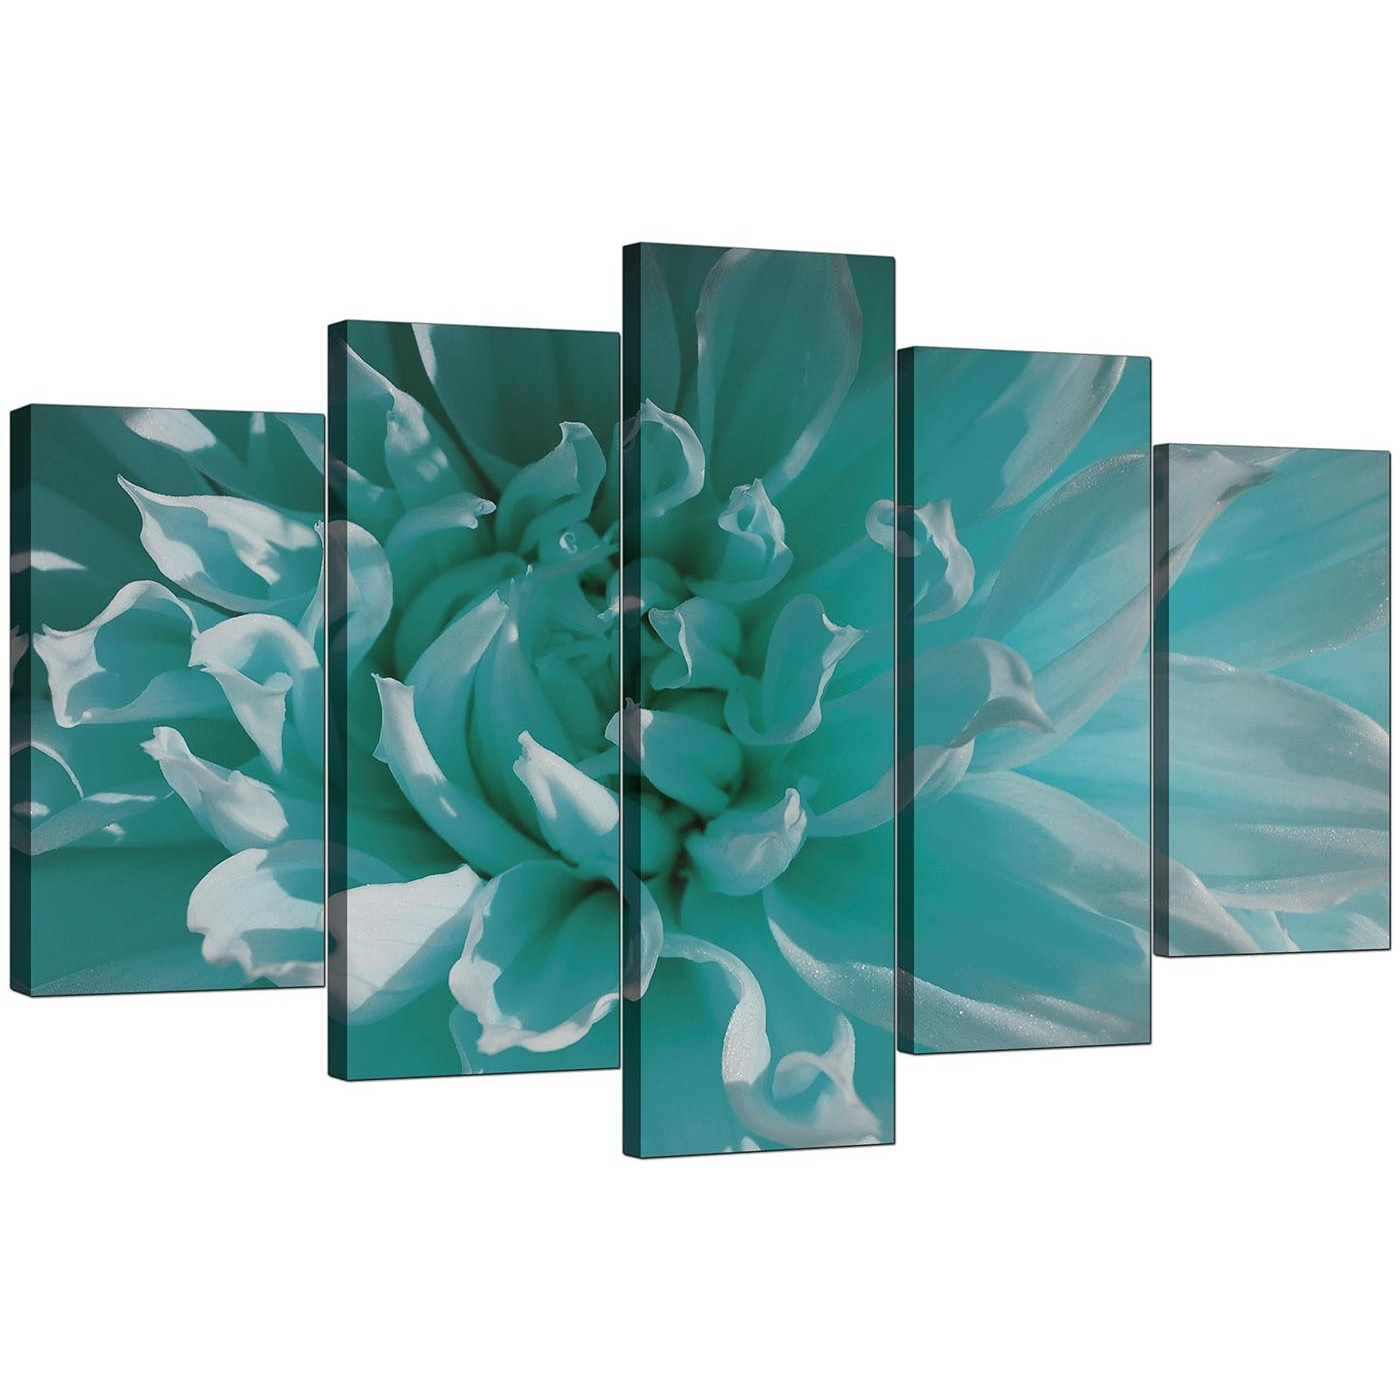 Extra Large Flower Canvas Wall Art 5 Piece In Teal With Regard To Newest Teal Wall Art (View 6 of 15)